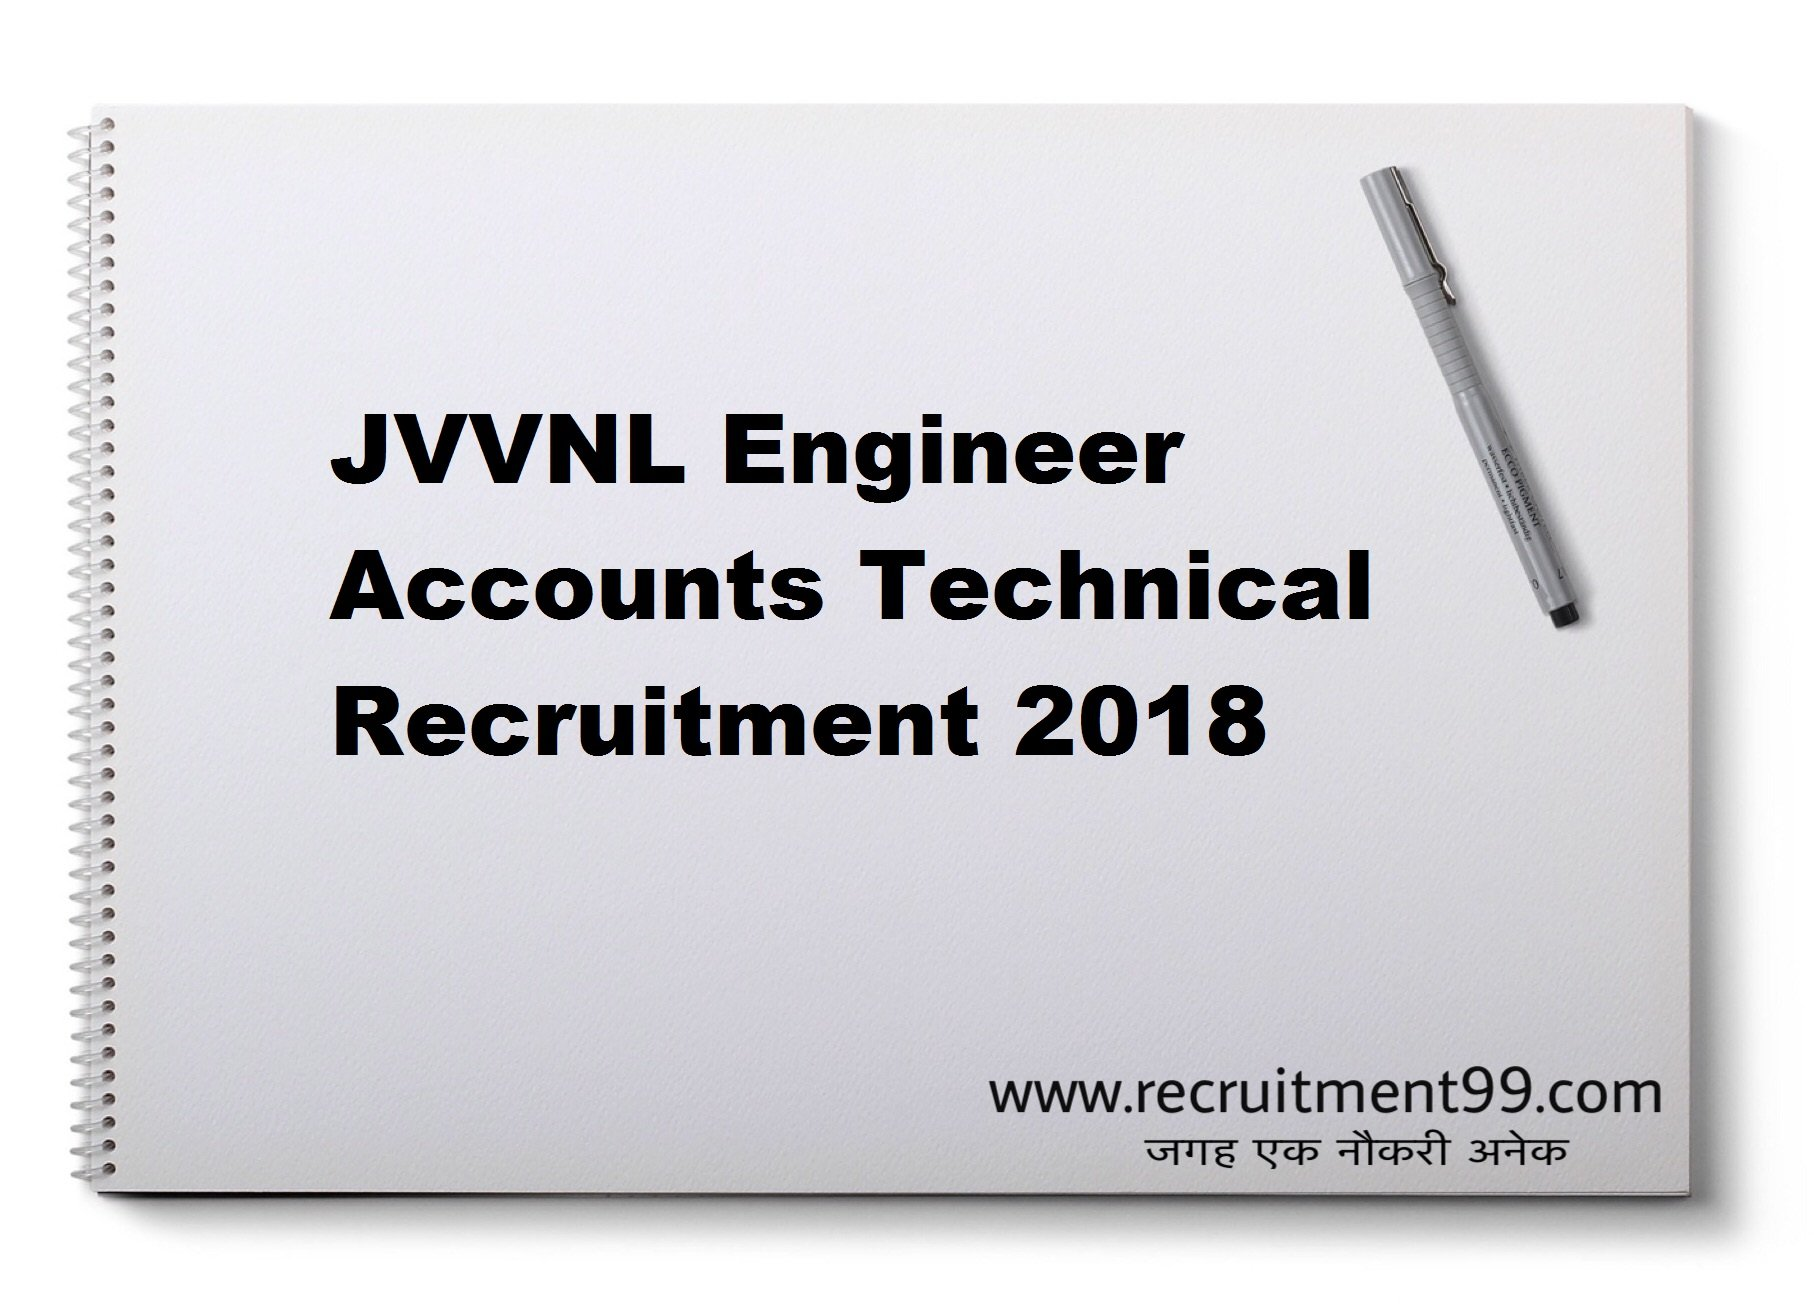 JVVNL Engineer Accounts Technical Recruitment Admit Card Result 2018